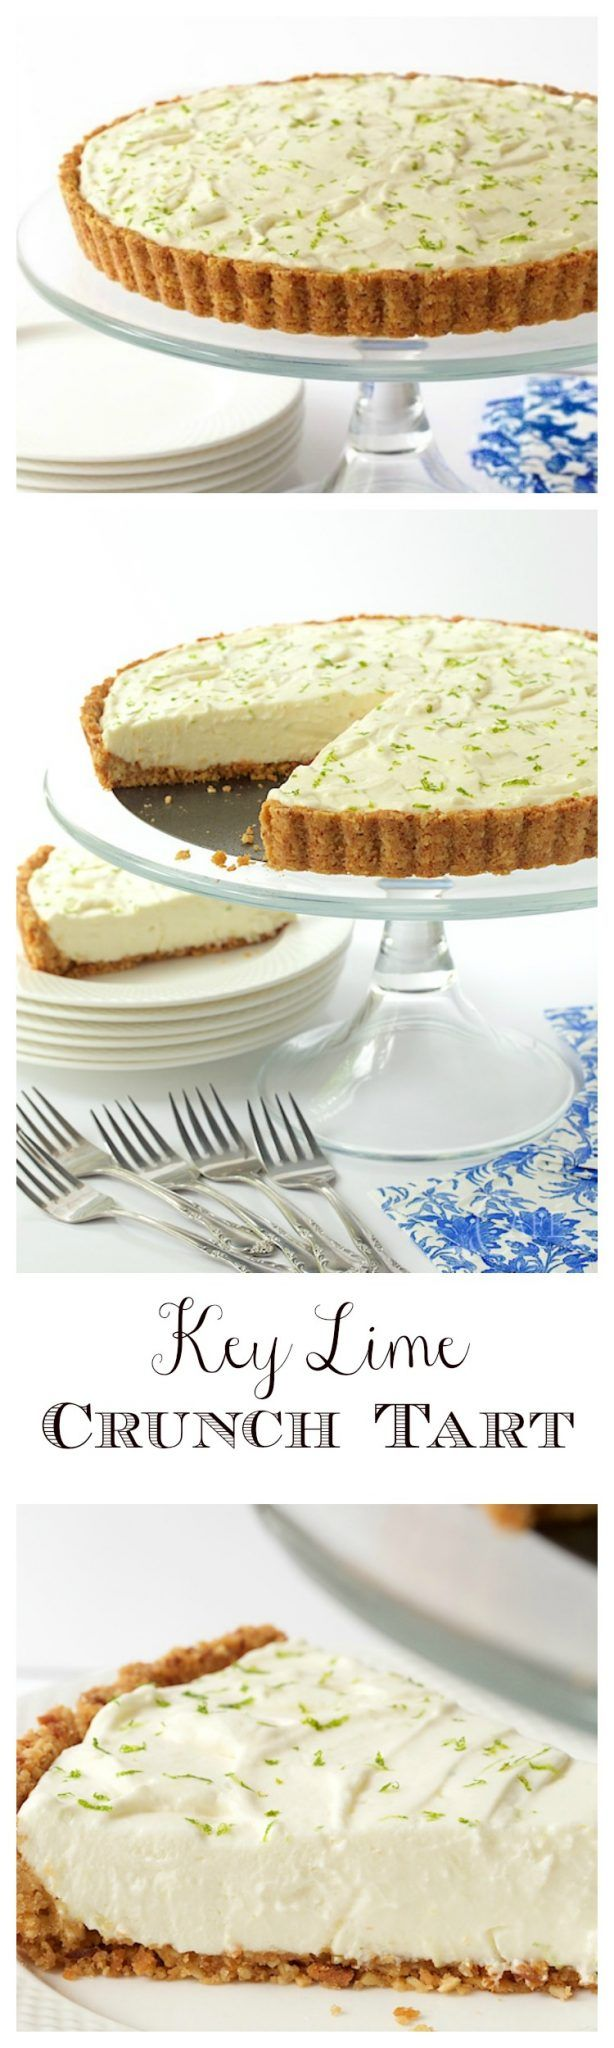 Key Lime Crunch Tart - with a crunchy coconut-almond shortbread crust and a creamy, light key lime filling, this easy, make-ahead tart is ALWAYS a hit!